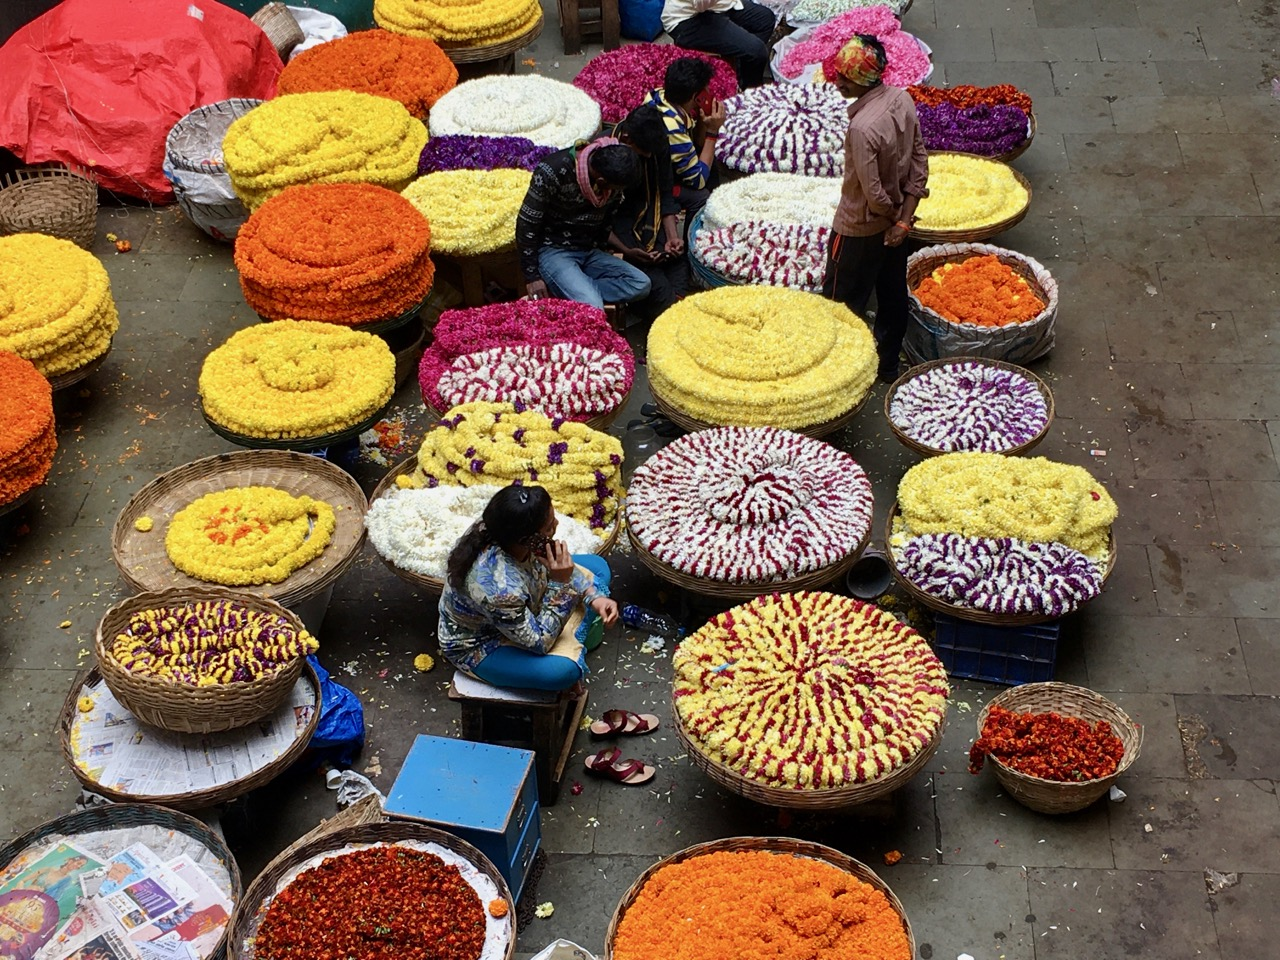 Flower market, Benagluru, Karnataka, India. Photo by Erica Gies.